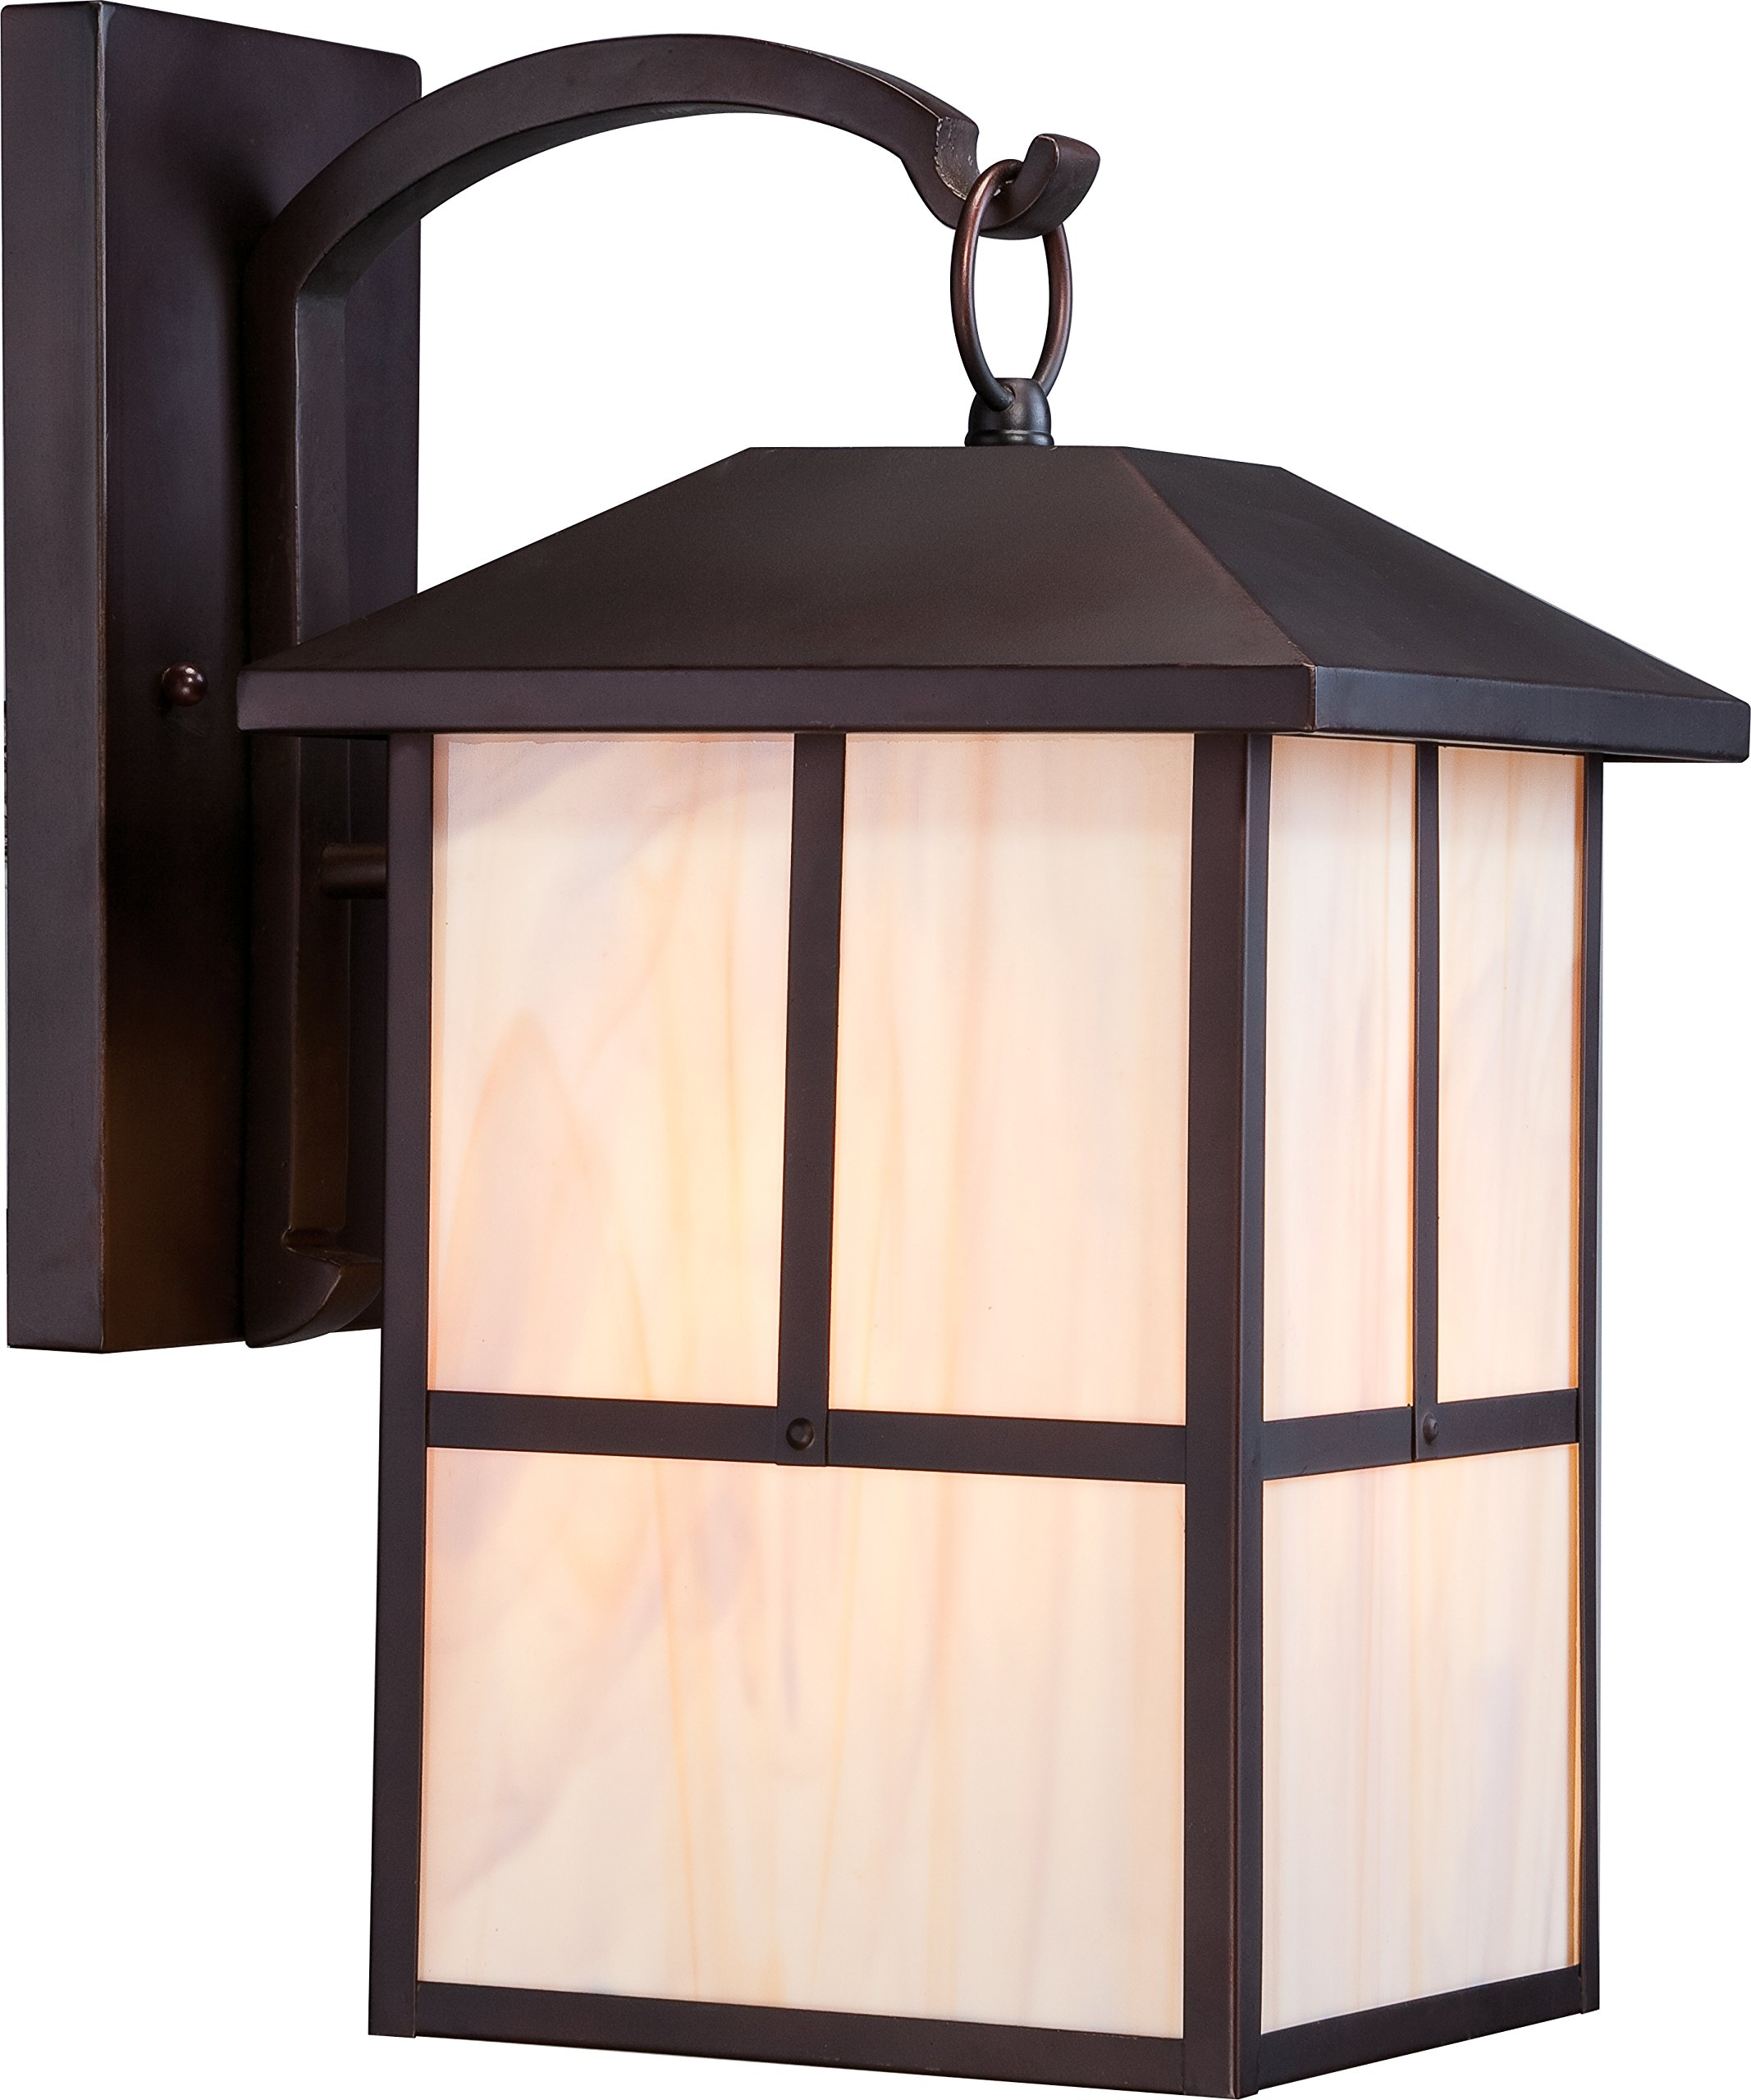 Nuvo Lighting 60/5673 Tanner Large One Light Wall Lantern 100-watt A19 Outdoor Porch and Patio Lighting with Honey Stained Glass, Claret Bronze